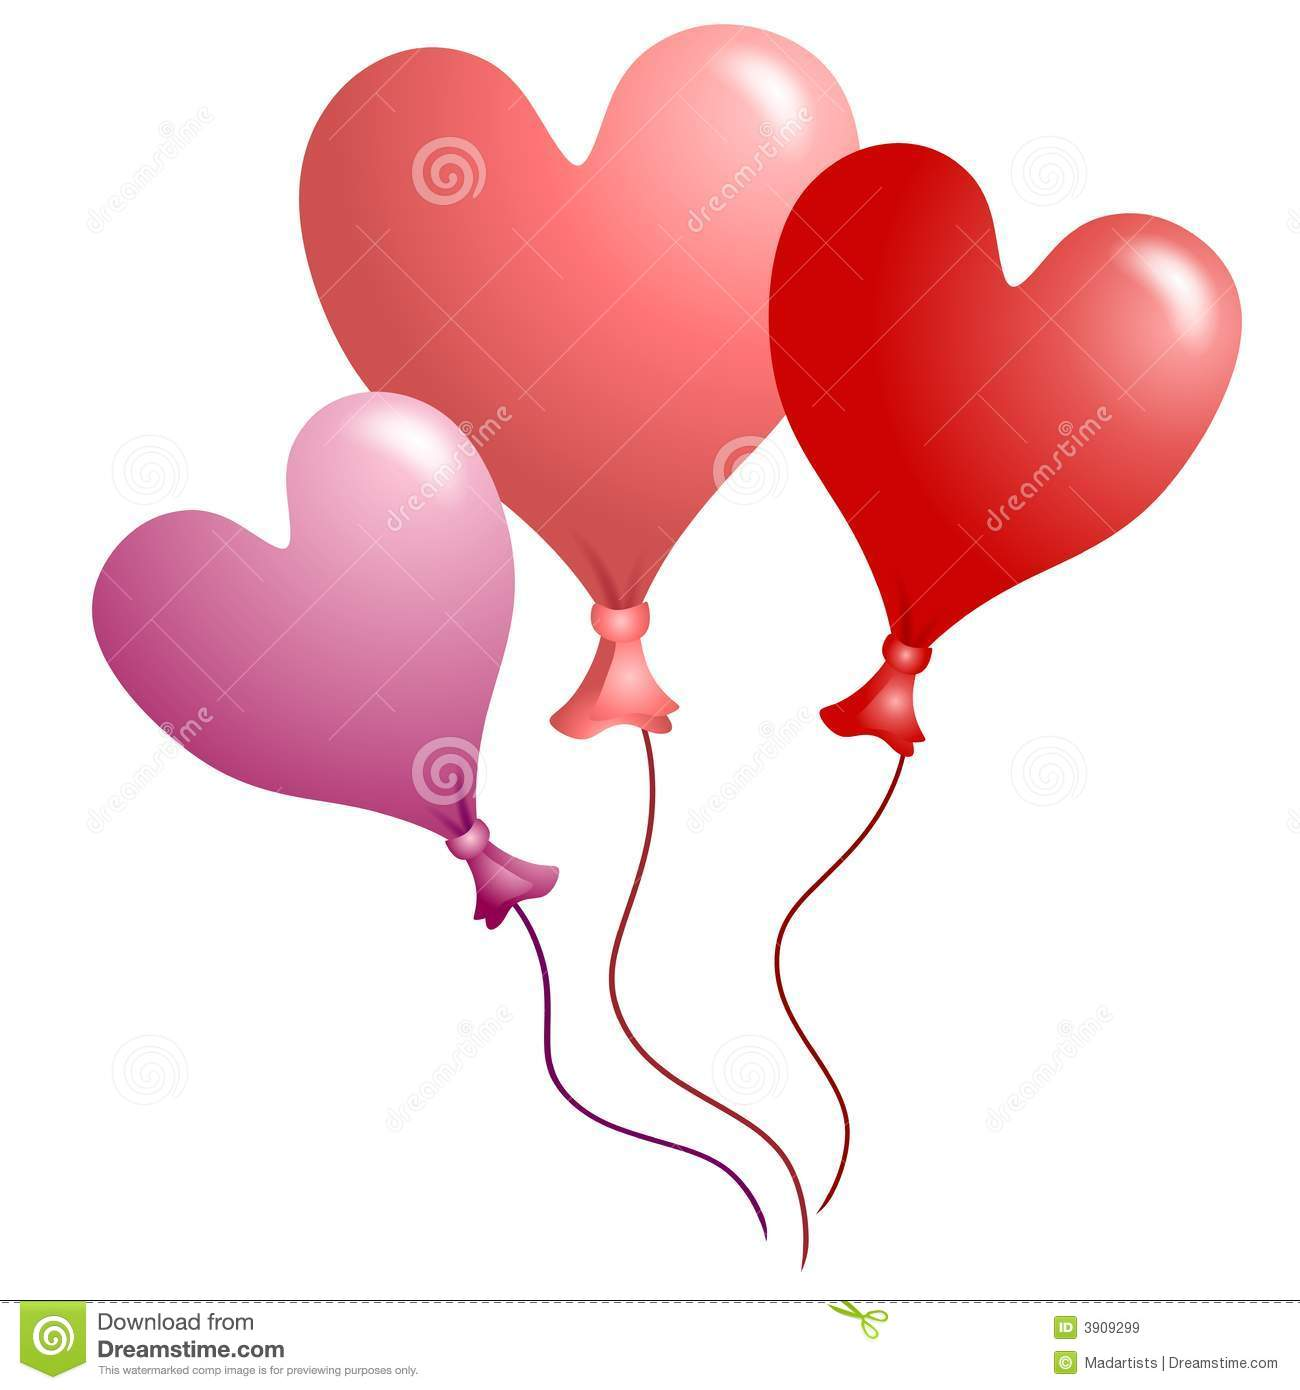 Valentine's Day Heart Shaped Balloons 2 Royalty Free Stock Images